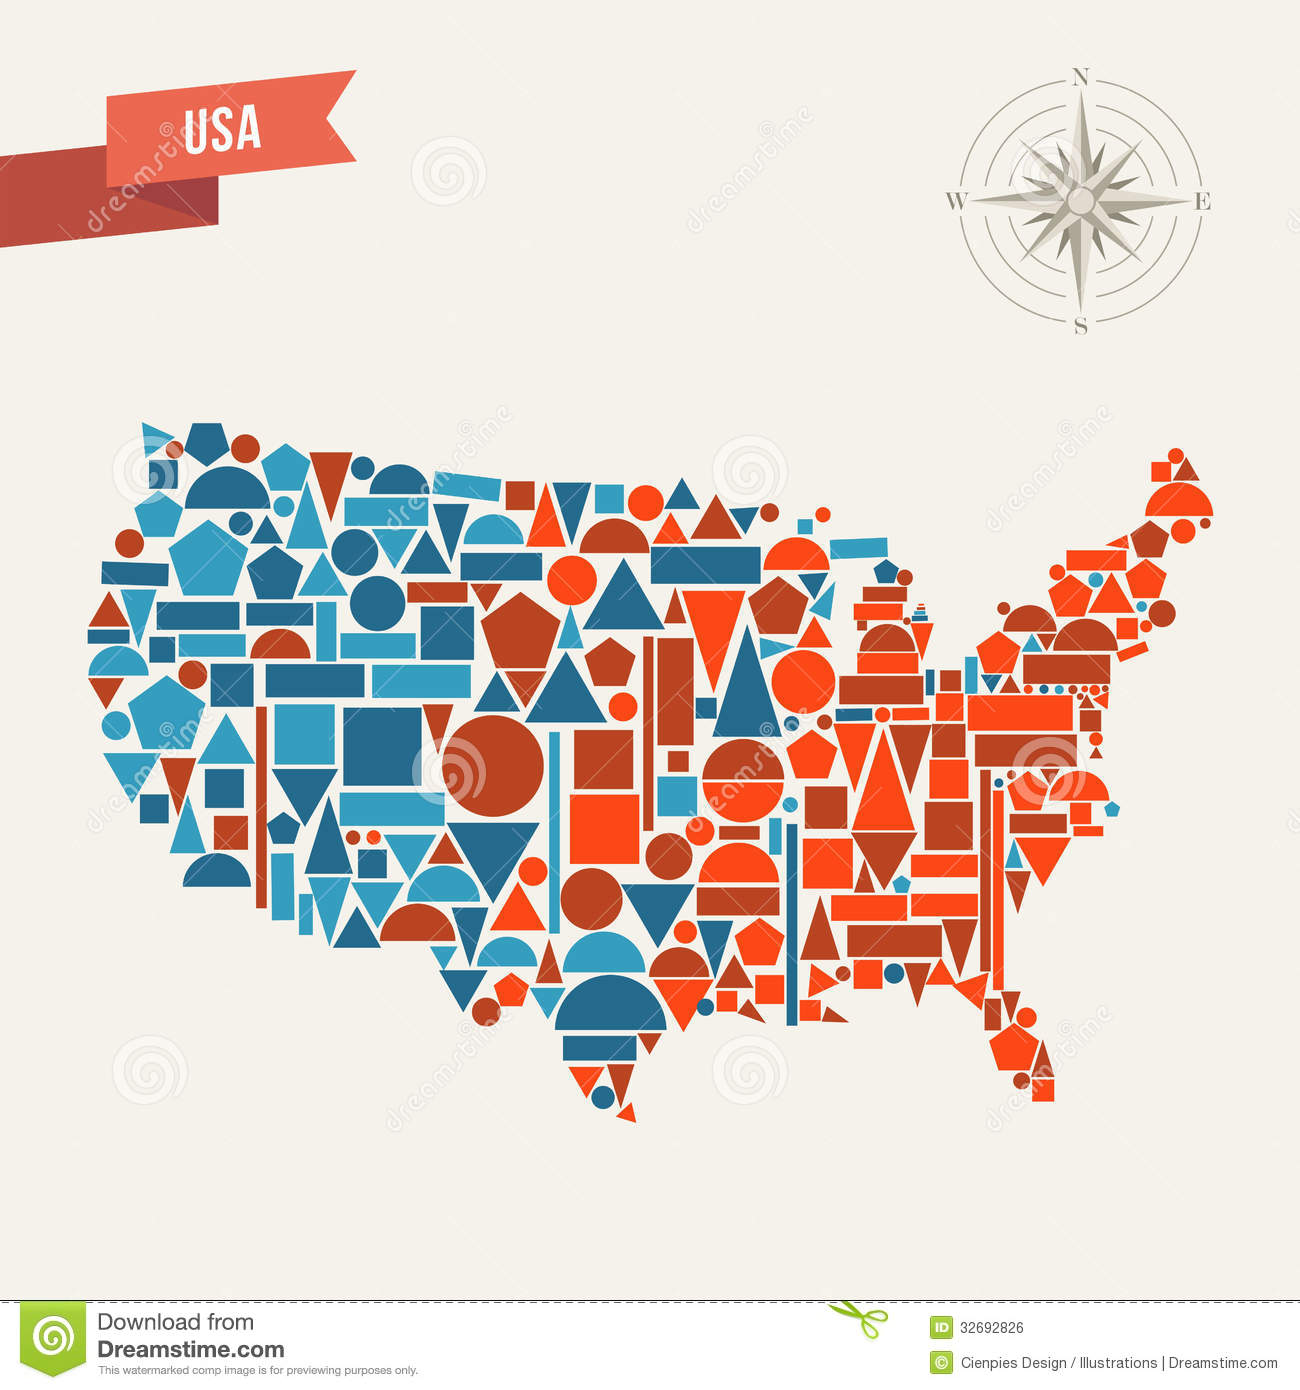 USA Abstract Map Royalty Free Stock Image Image - Us map illustration